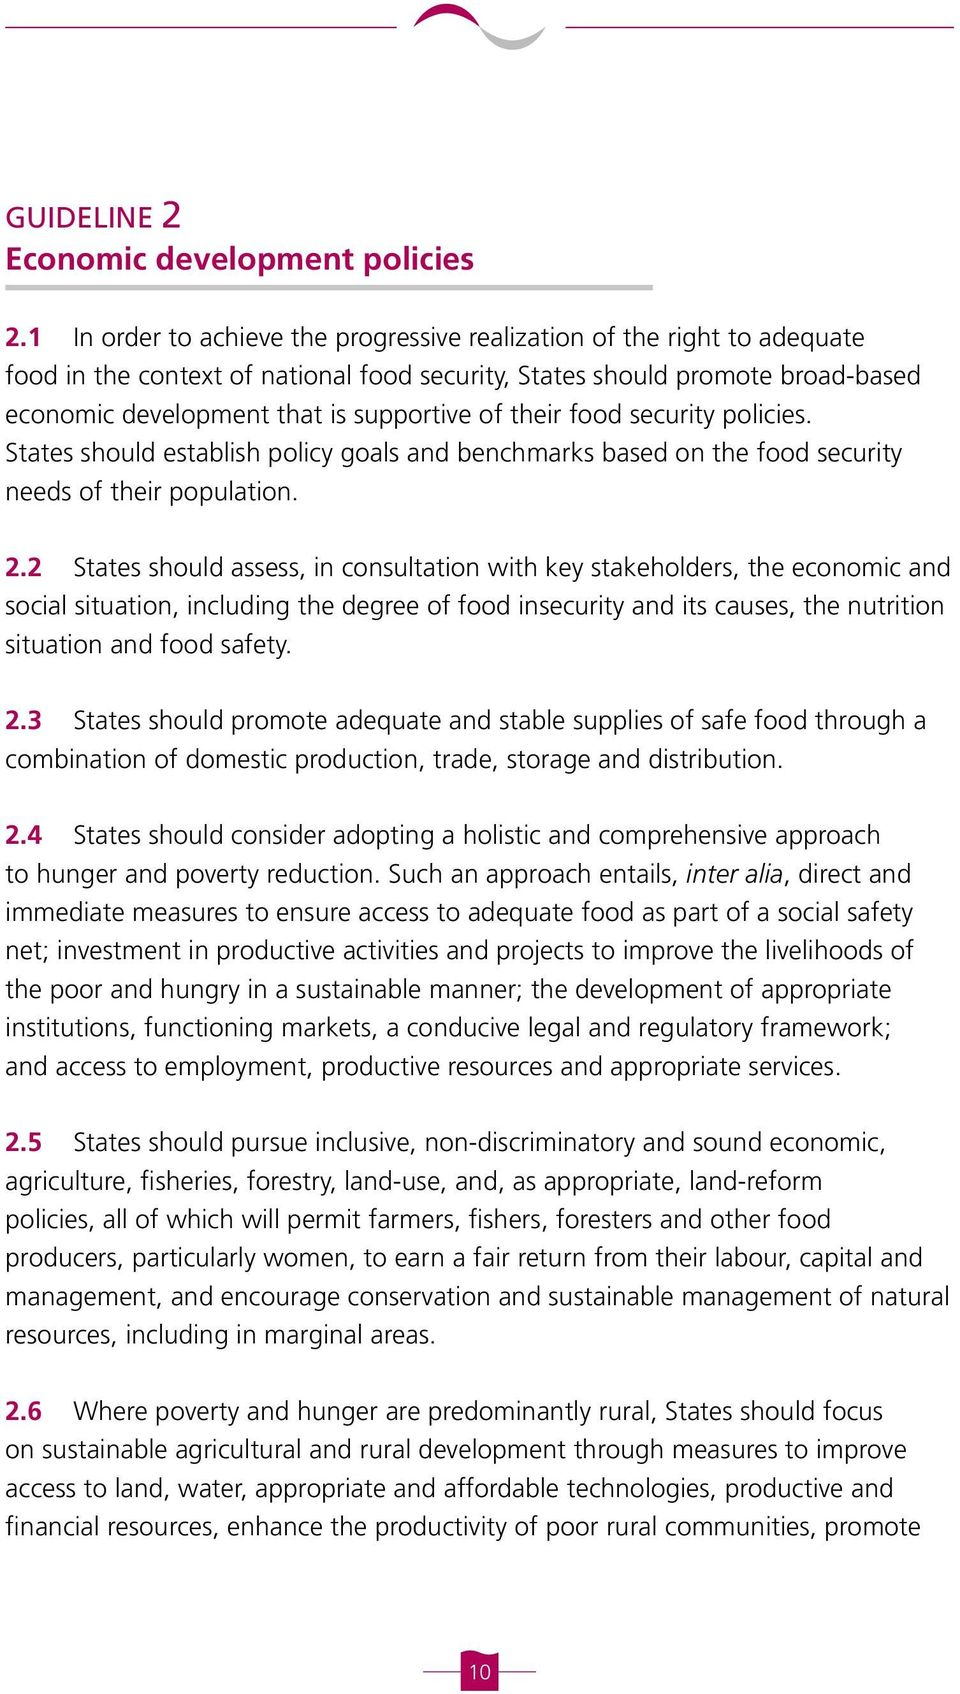 their food security policies. States should establish policy goals and benchmarks based on the food security needs of their population. 2.